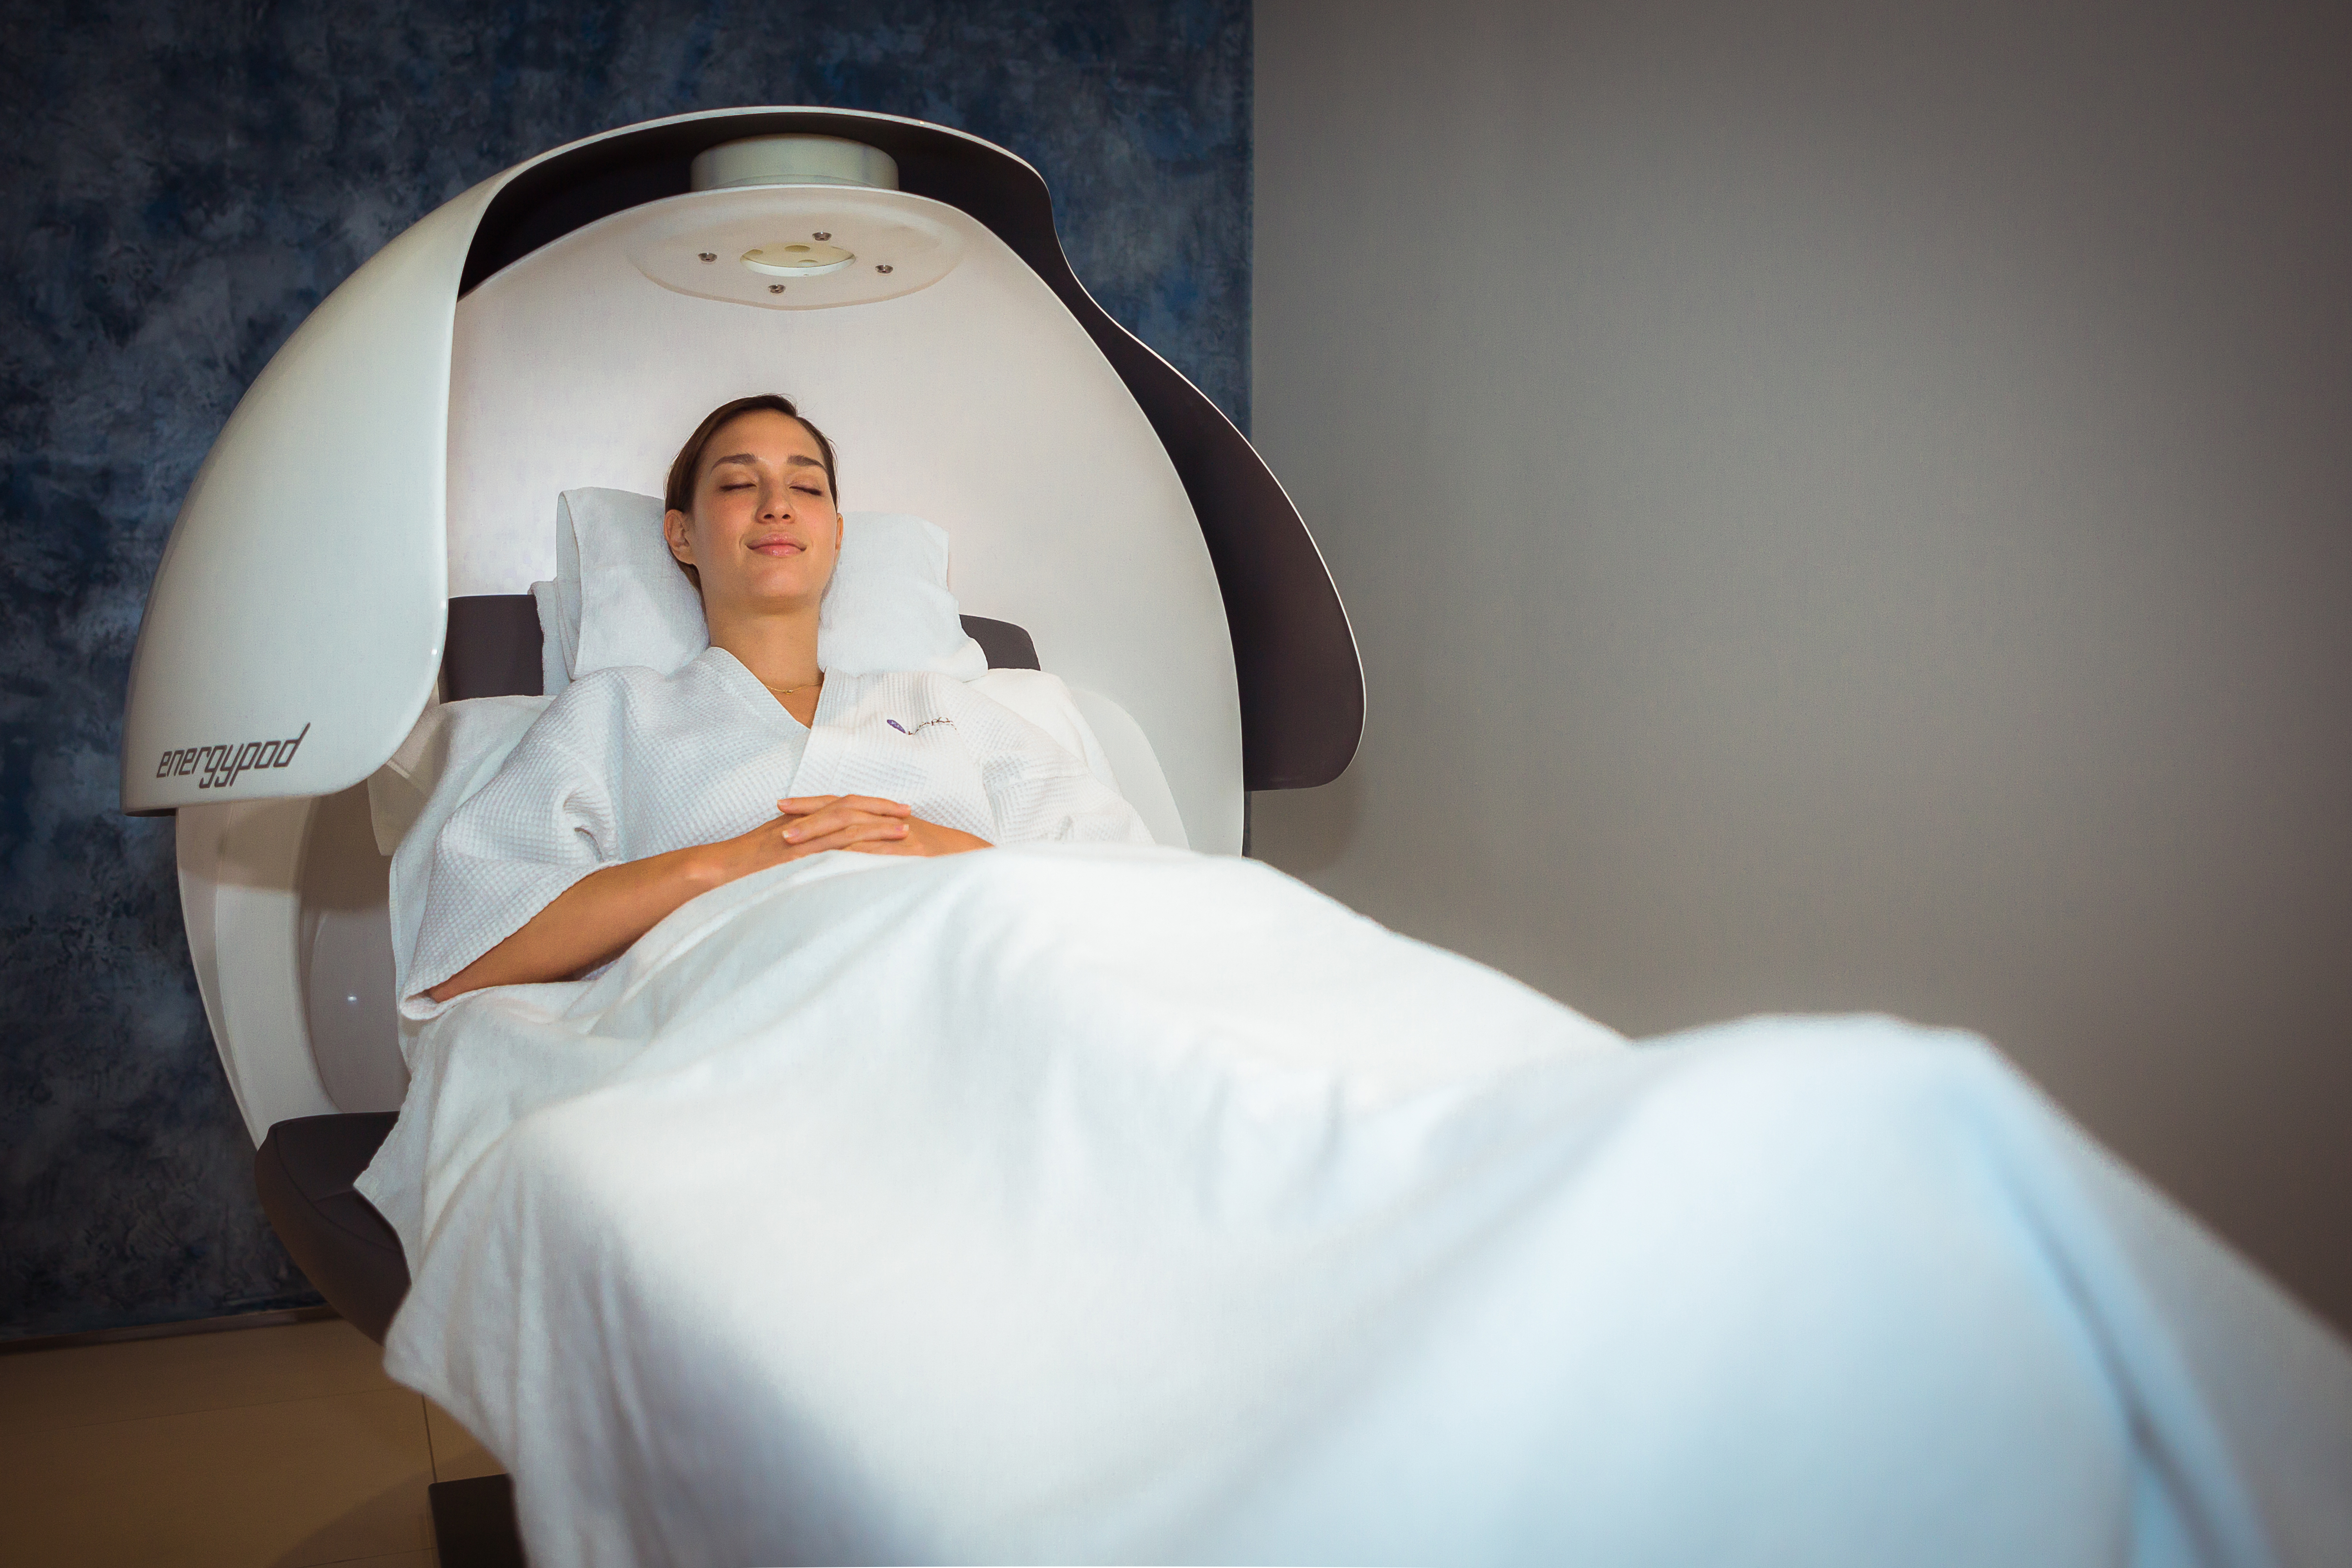 Energy pod, phuket's leading cutting edge health and beauty centre